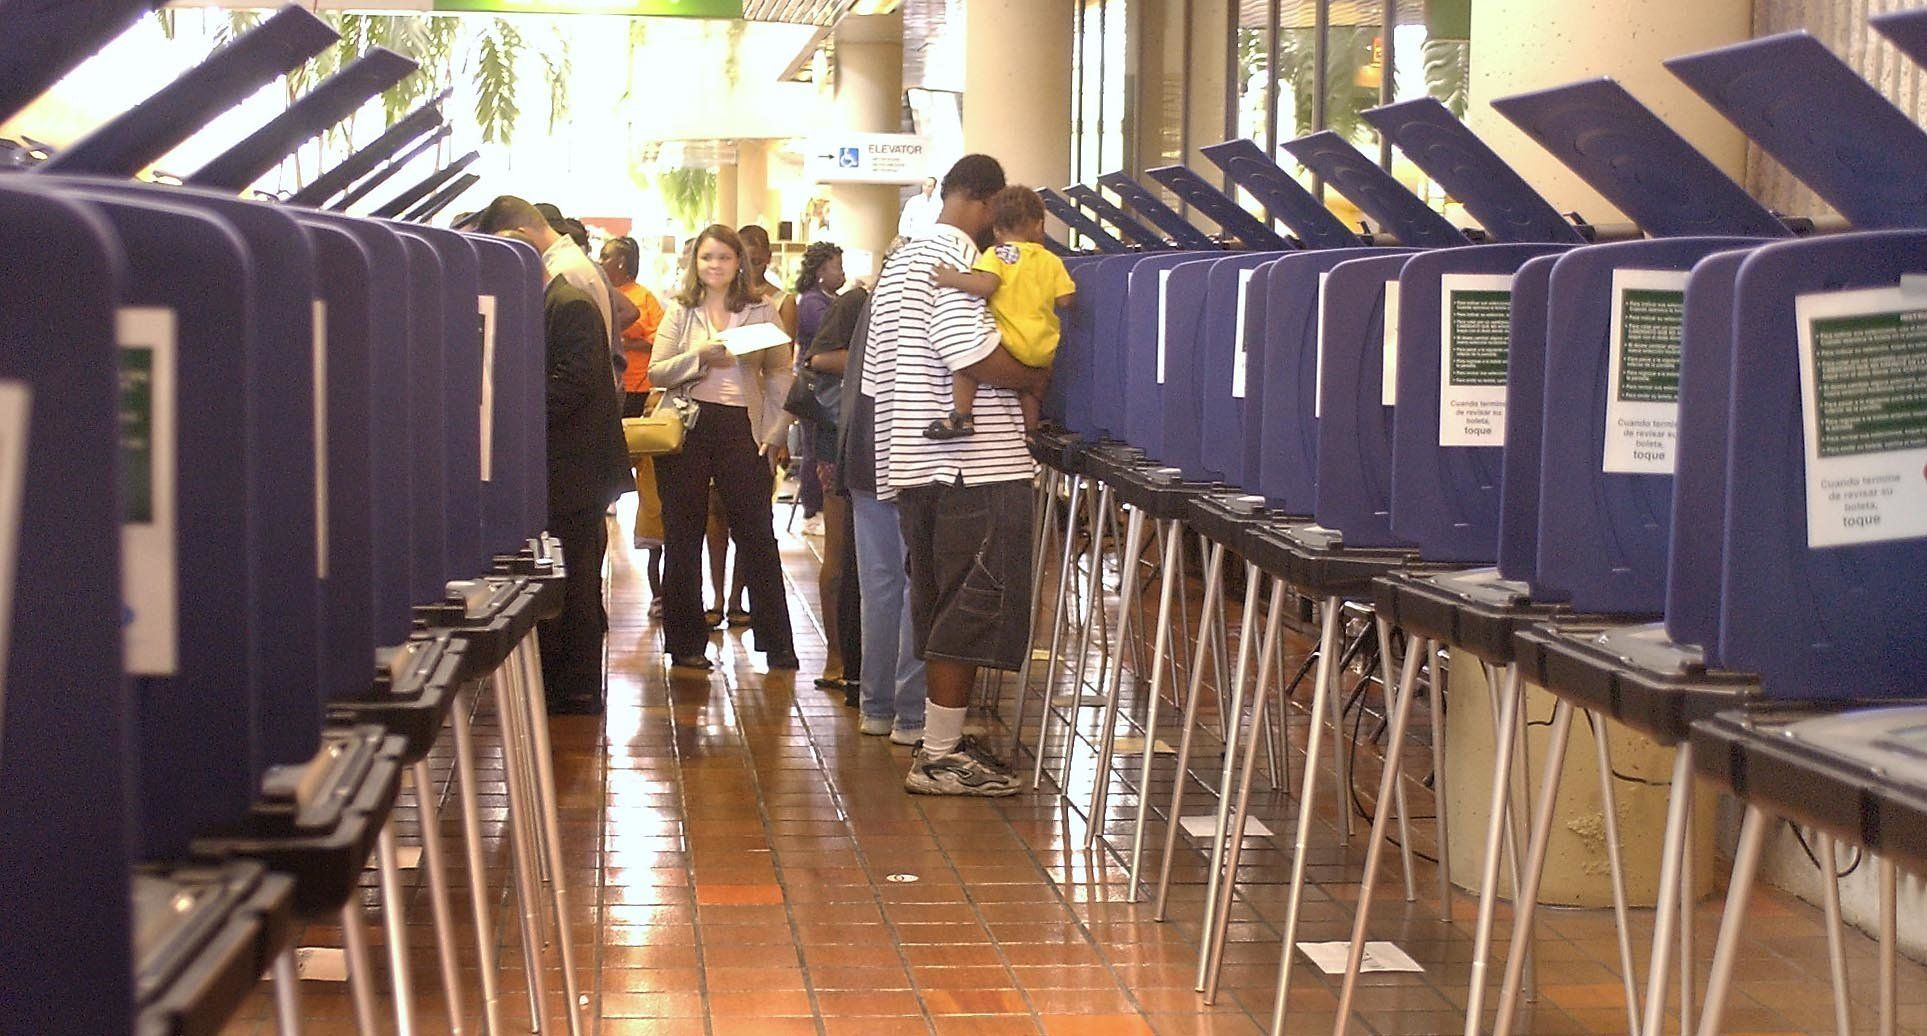 Voting booths are set up for an estimated 600-800 people in line at the Stephen P. Clark Center Monday, Nov. 1, 2004, in Miami.  (AP Photos/Mitchell Zachs)